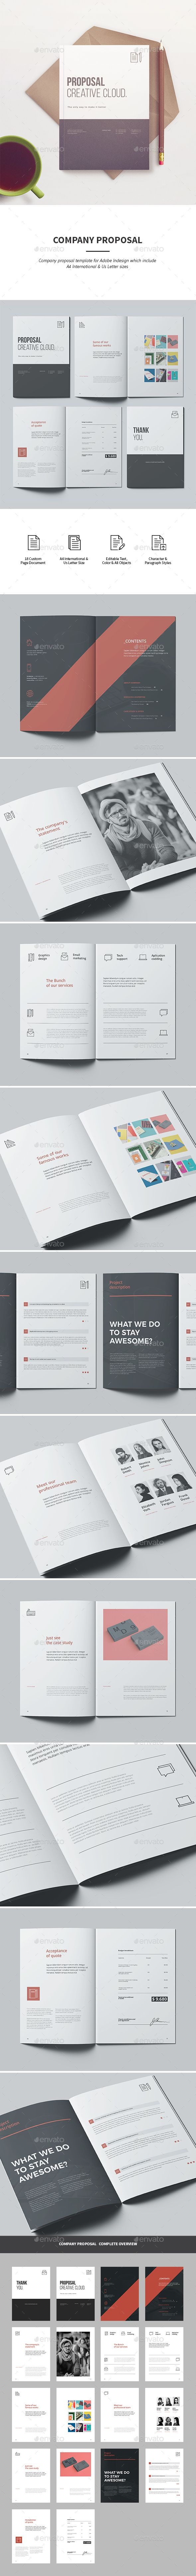 Proposal template for Adobe InDesign it comes in International A4 & Us Letter size.